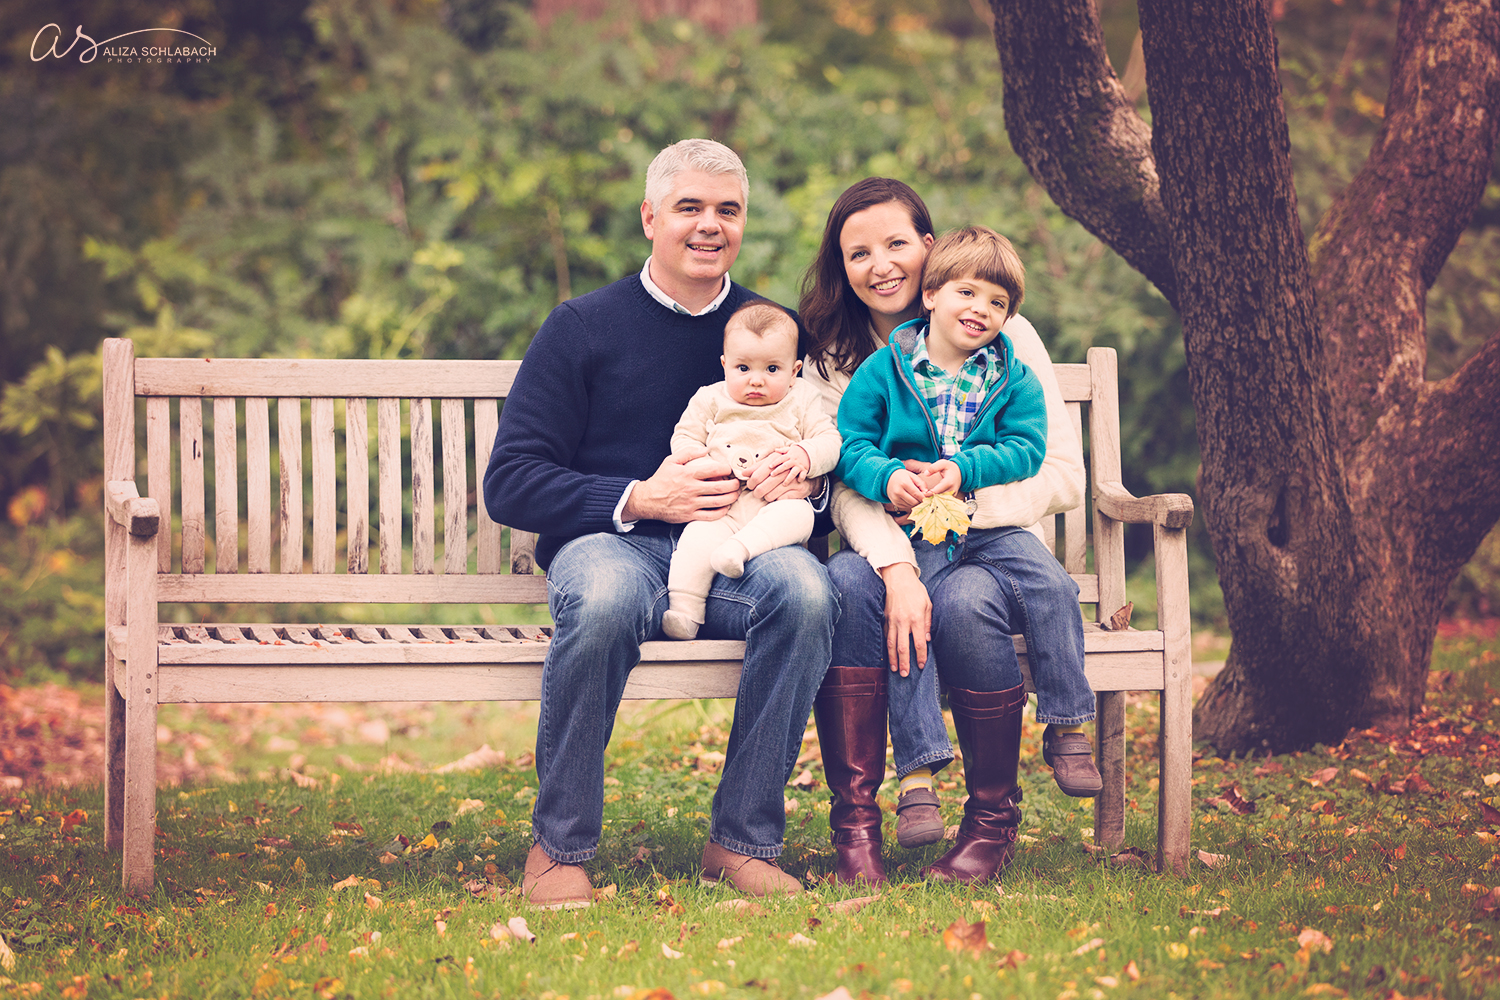 Family photo on a bench at The Grange Estate in Havertown